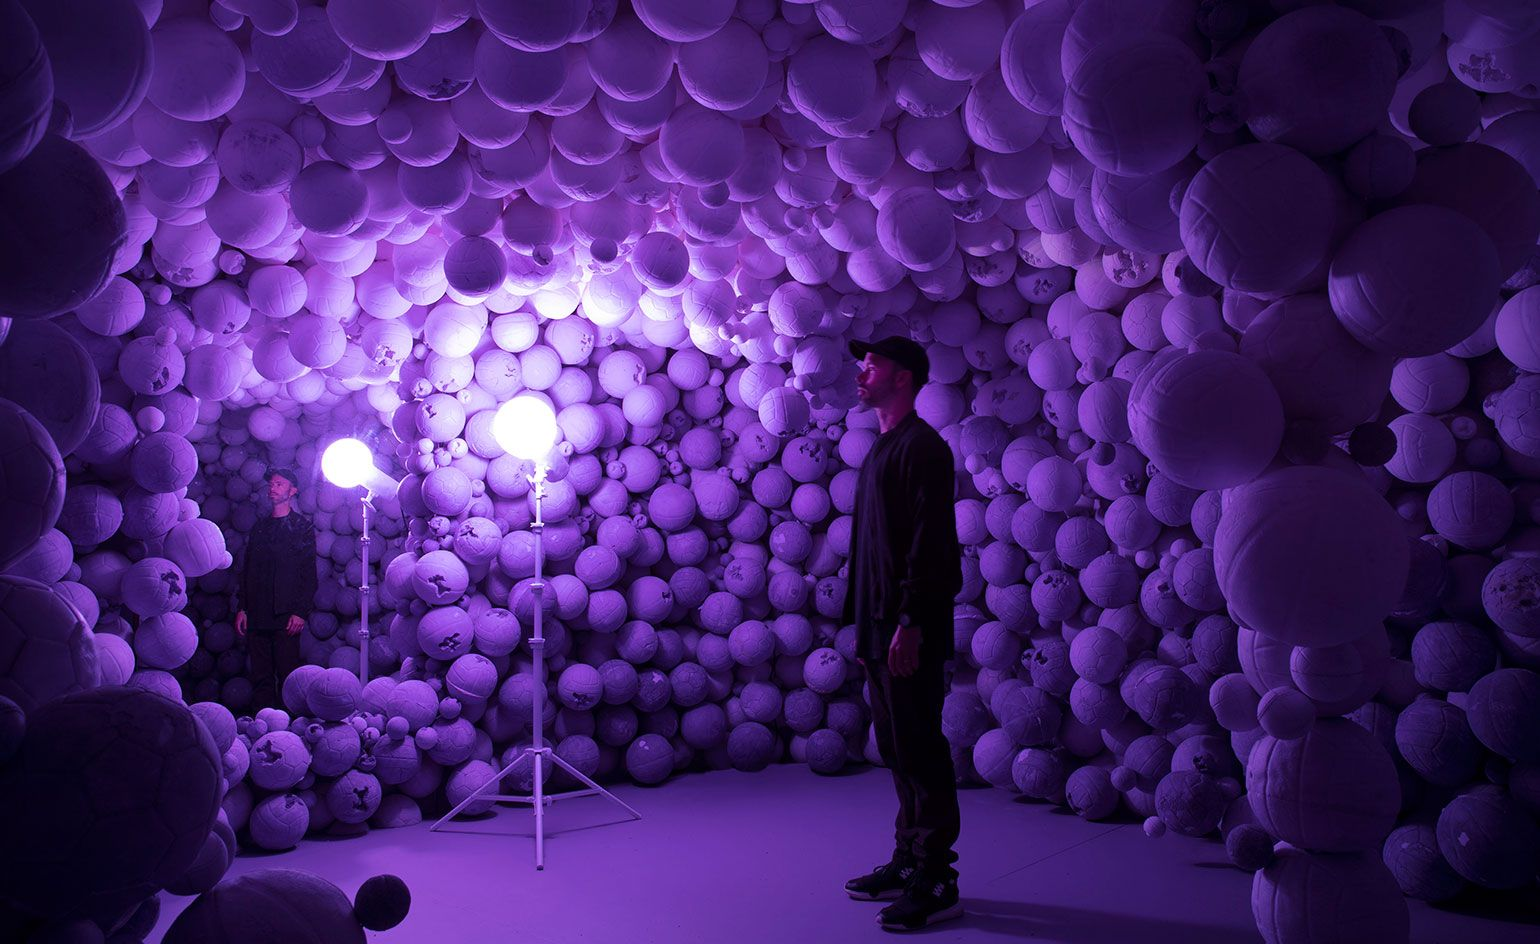 Hourglass figure Daniel Arsham brings calm and colour to